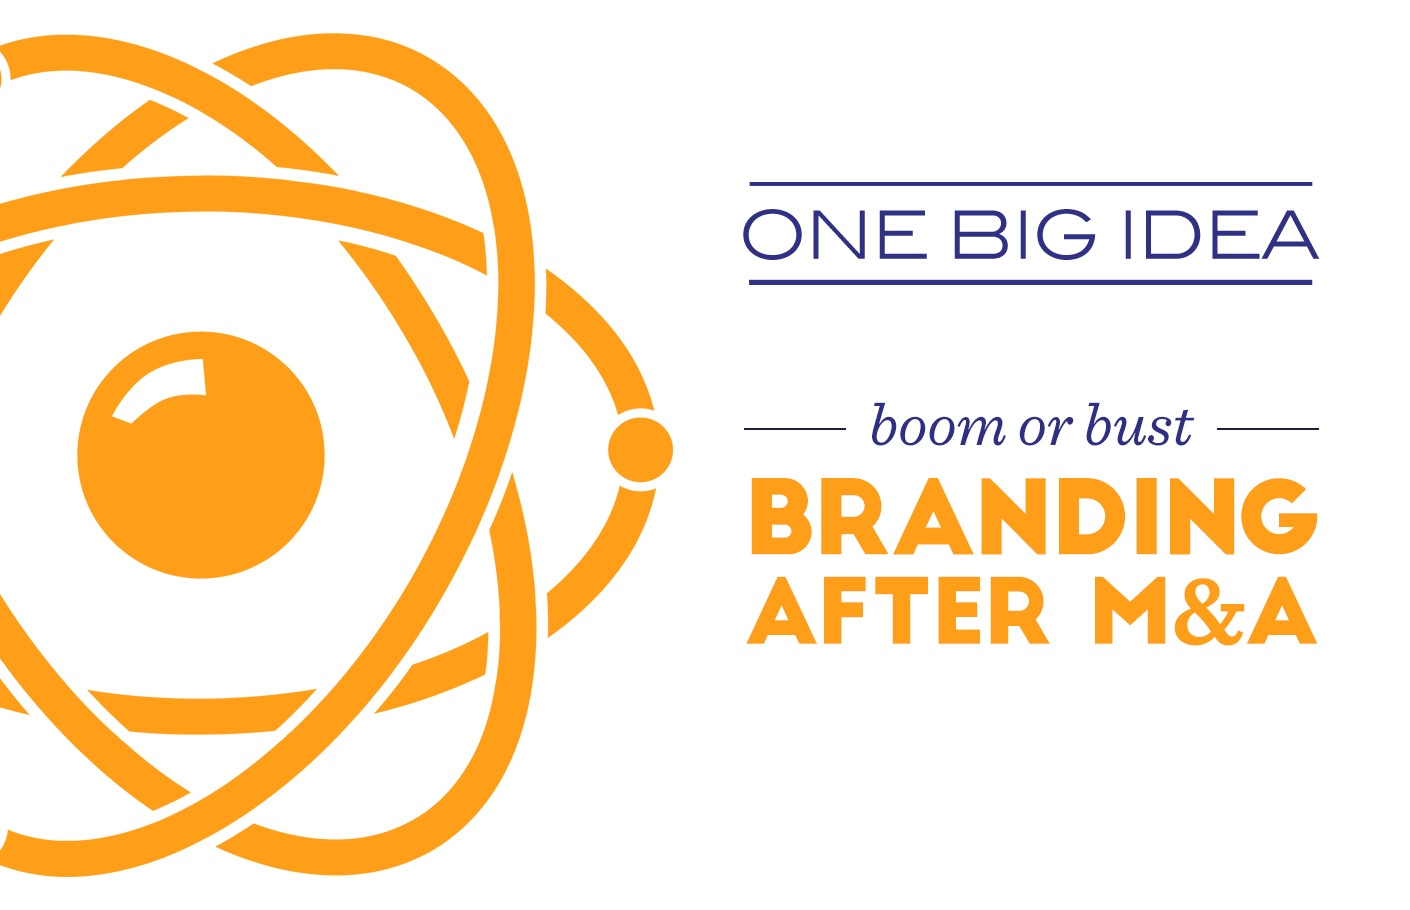 One Big Idea: Boom or Bust - Branding After M&A